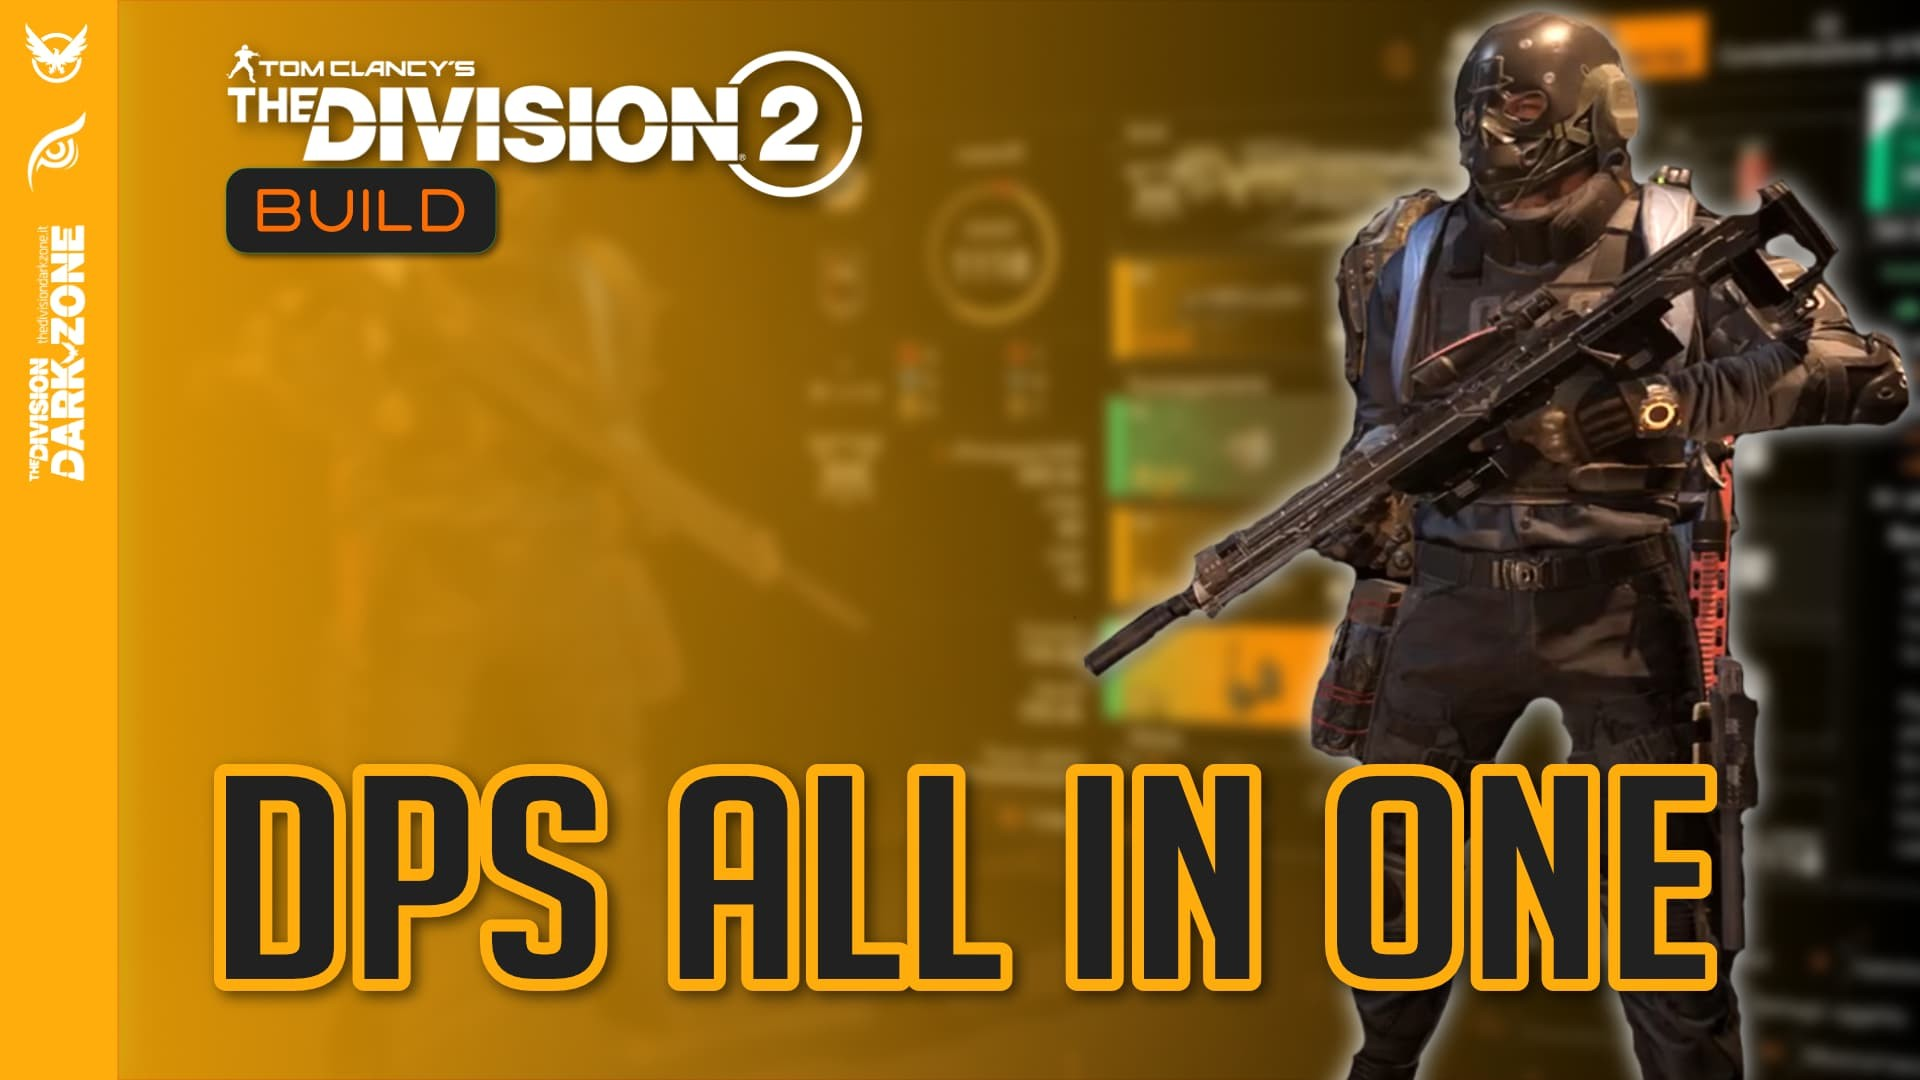 Build the division 2 - dps all in one